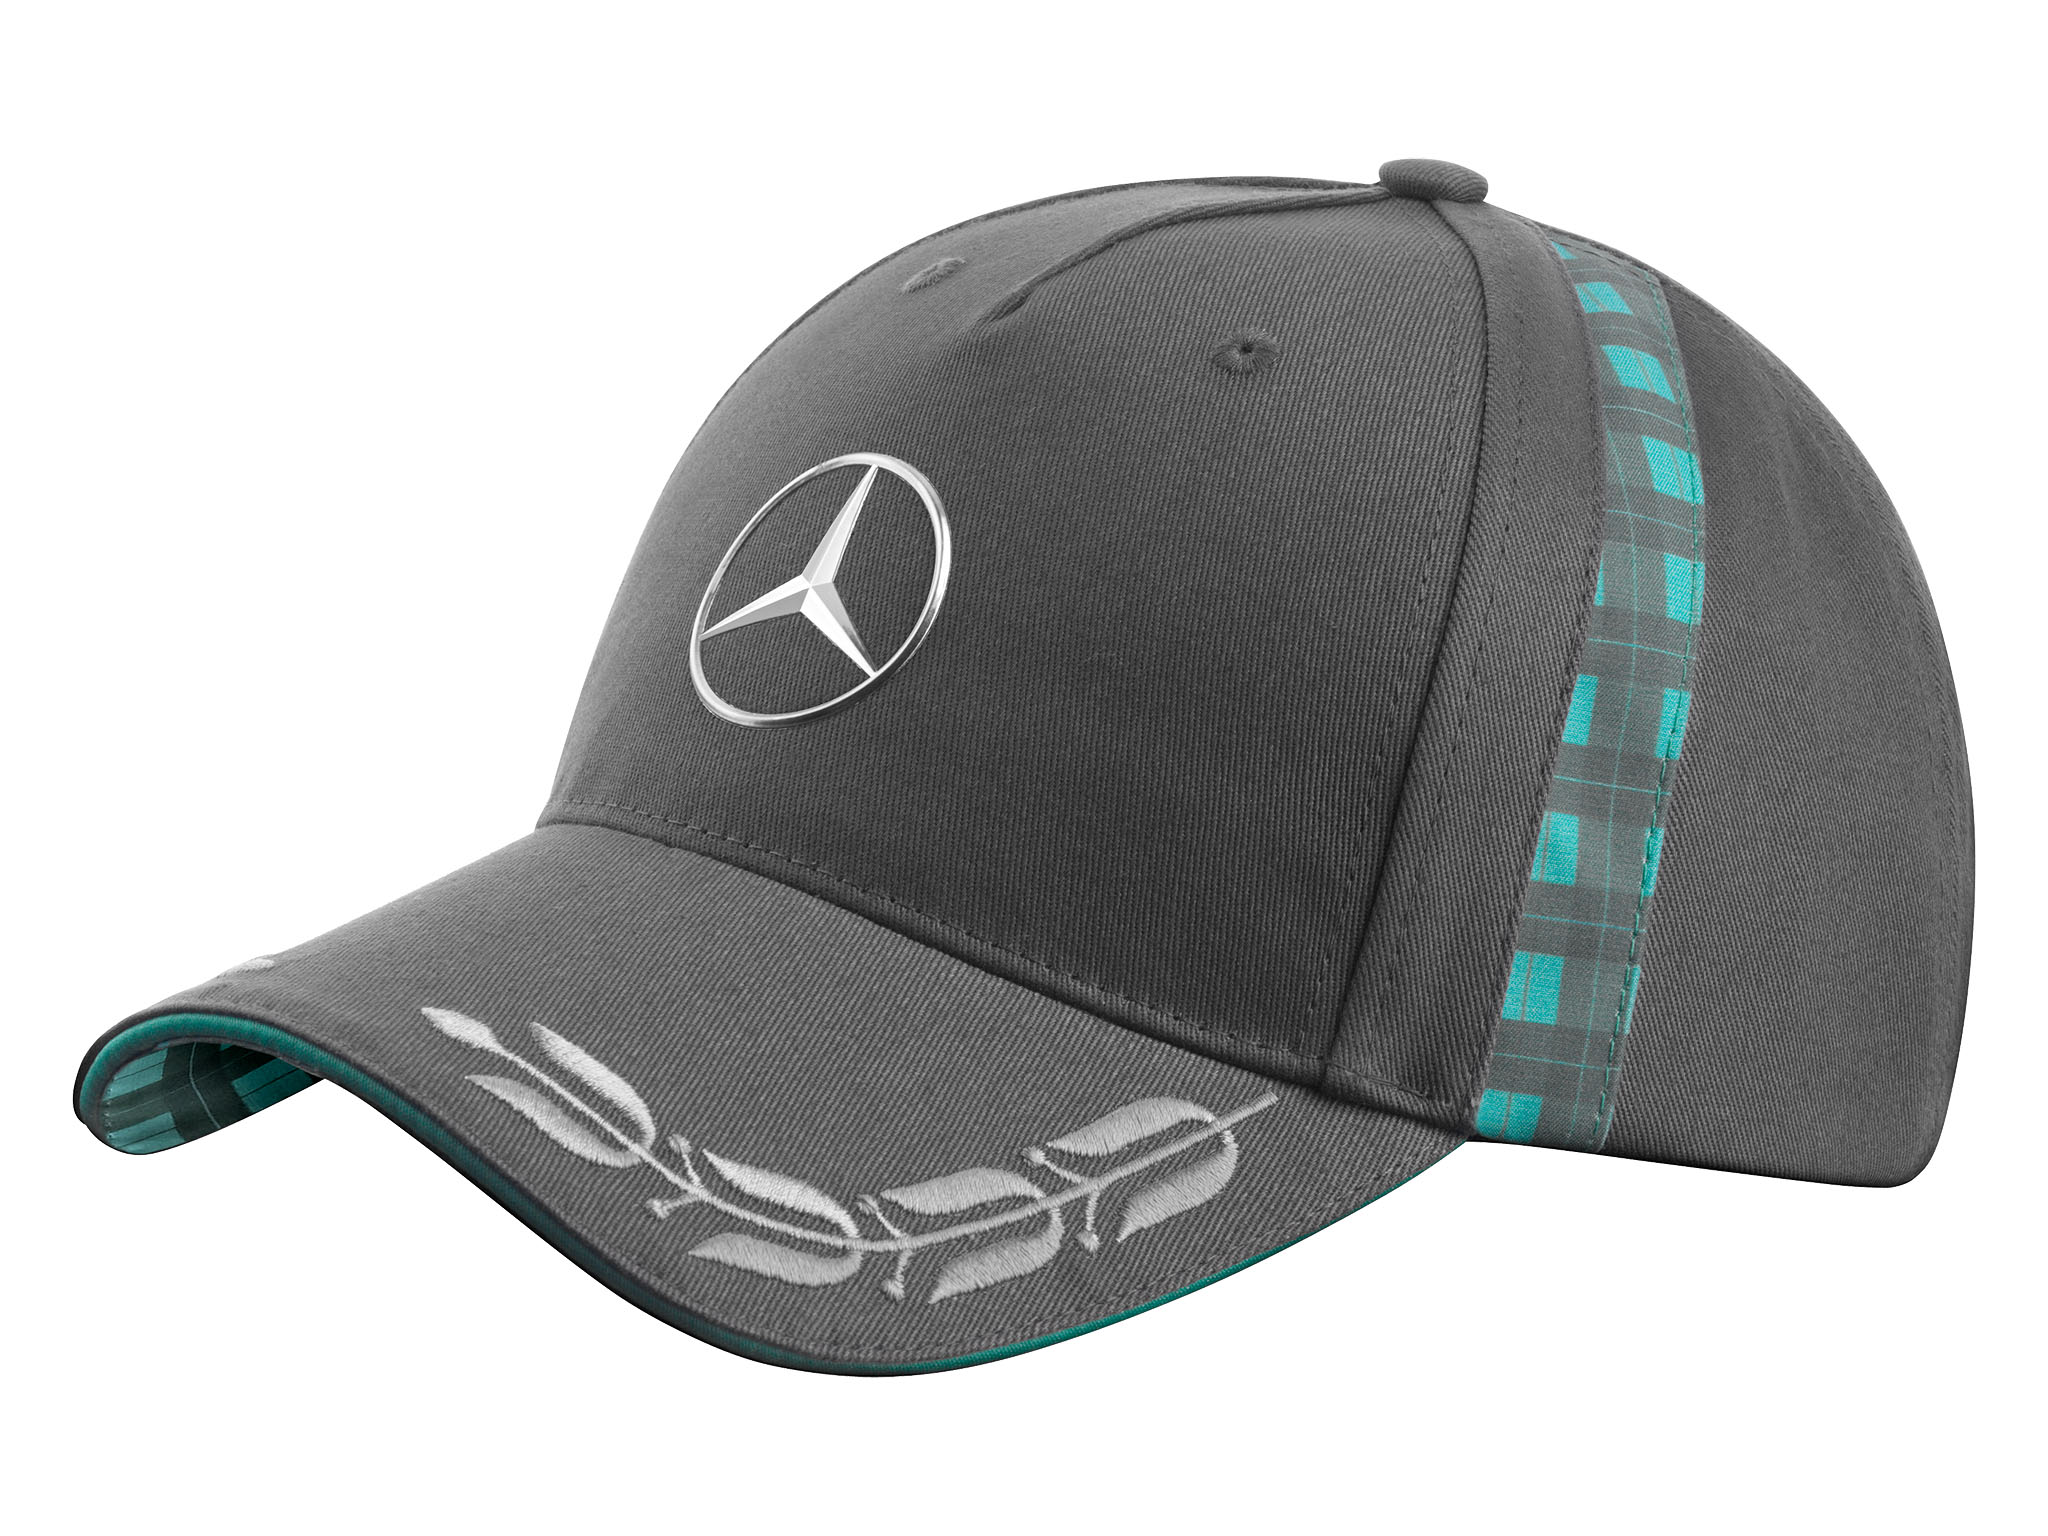 Baseballcap heritage heren mercedes benz official for Mercedes benz caps hats